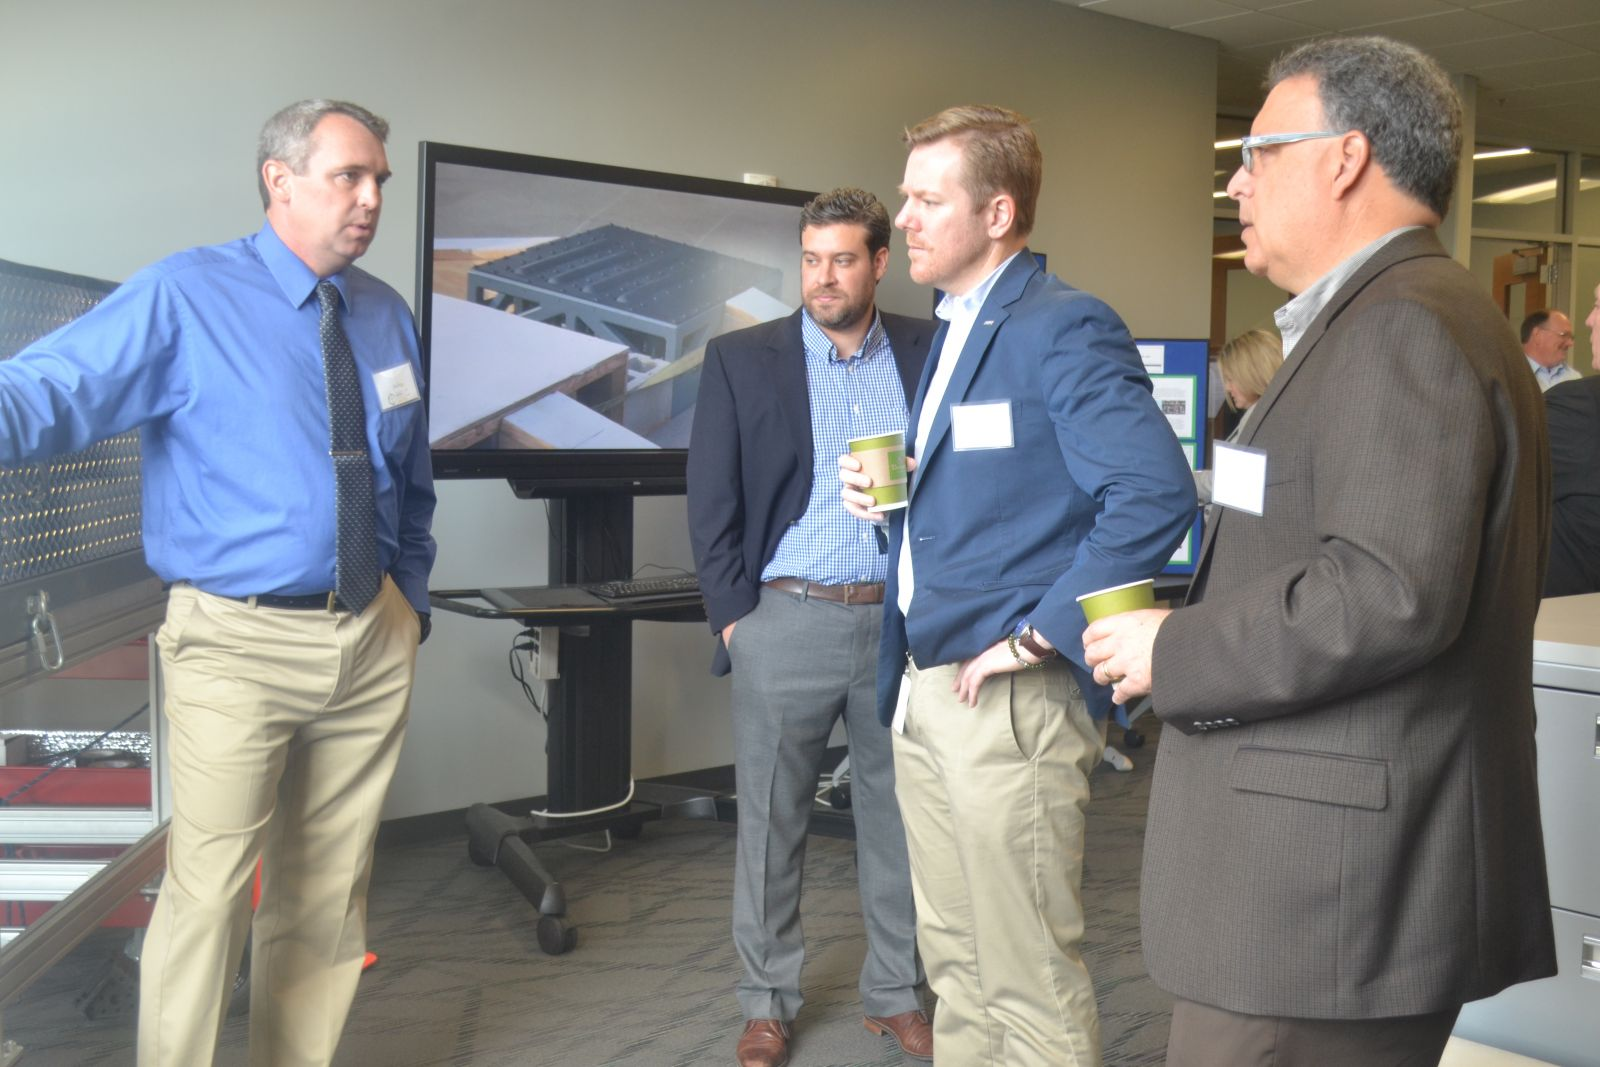 Jim Nigg, left, president and CEO of Constructis LLC, talks about kinetic energy during a media event Tuesday to announce the Manufacturing Business Incubator at the Center for Manufacturing Innovation. (Photo by Teresa Cutlip)